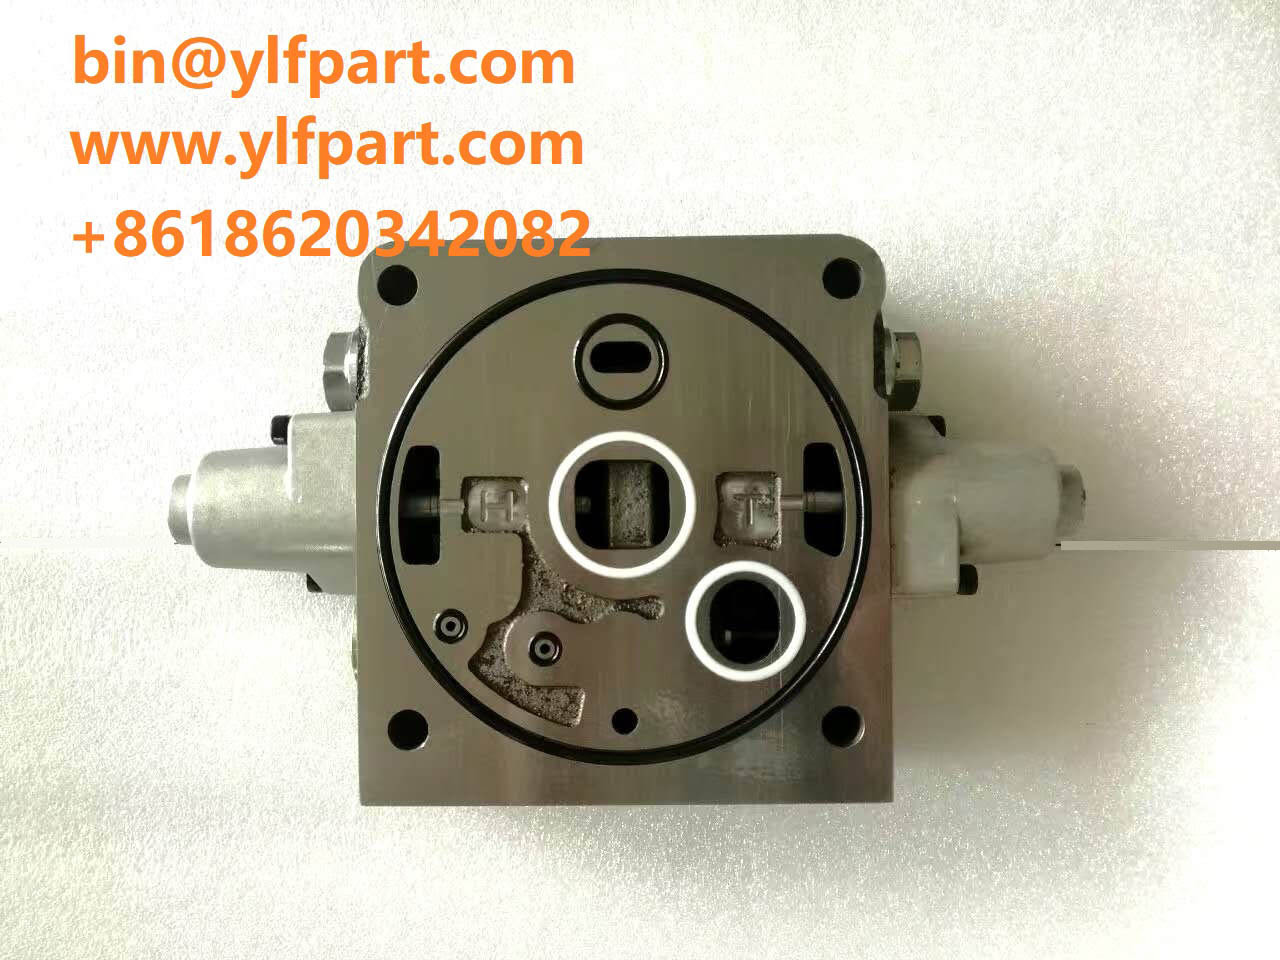 Excavator Komatus PC360-8 spare parts PC400-8 PC360-7 extra spool valve for hydraulic hammer lines piping kits